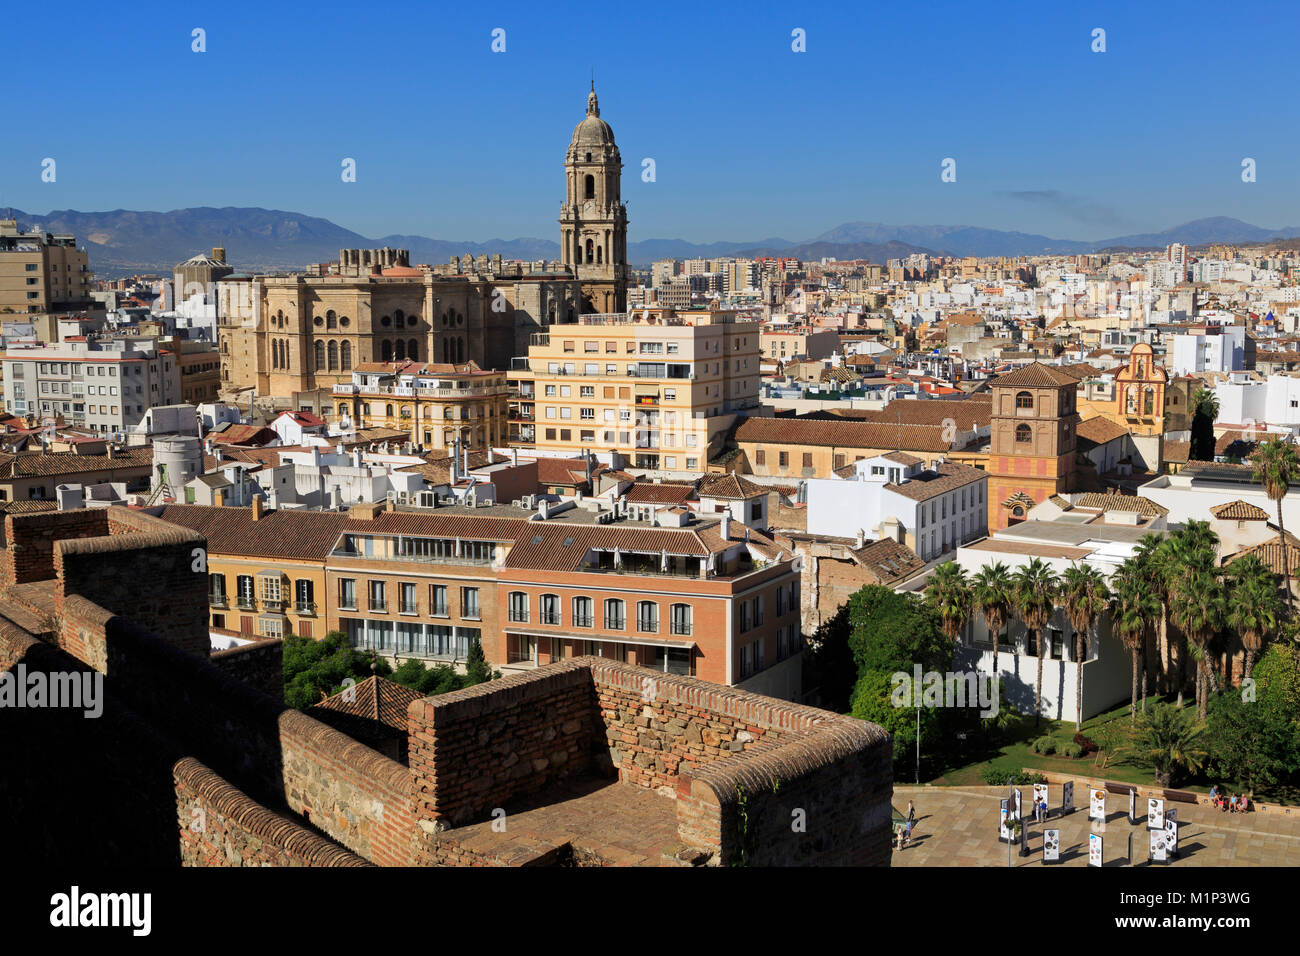 View from Alcazaba Palace, Malaga, Andalusia, Spain, Europe - Stock Image